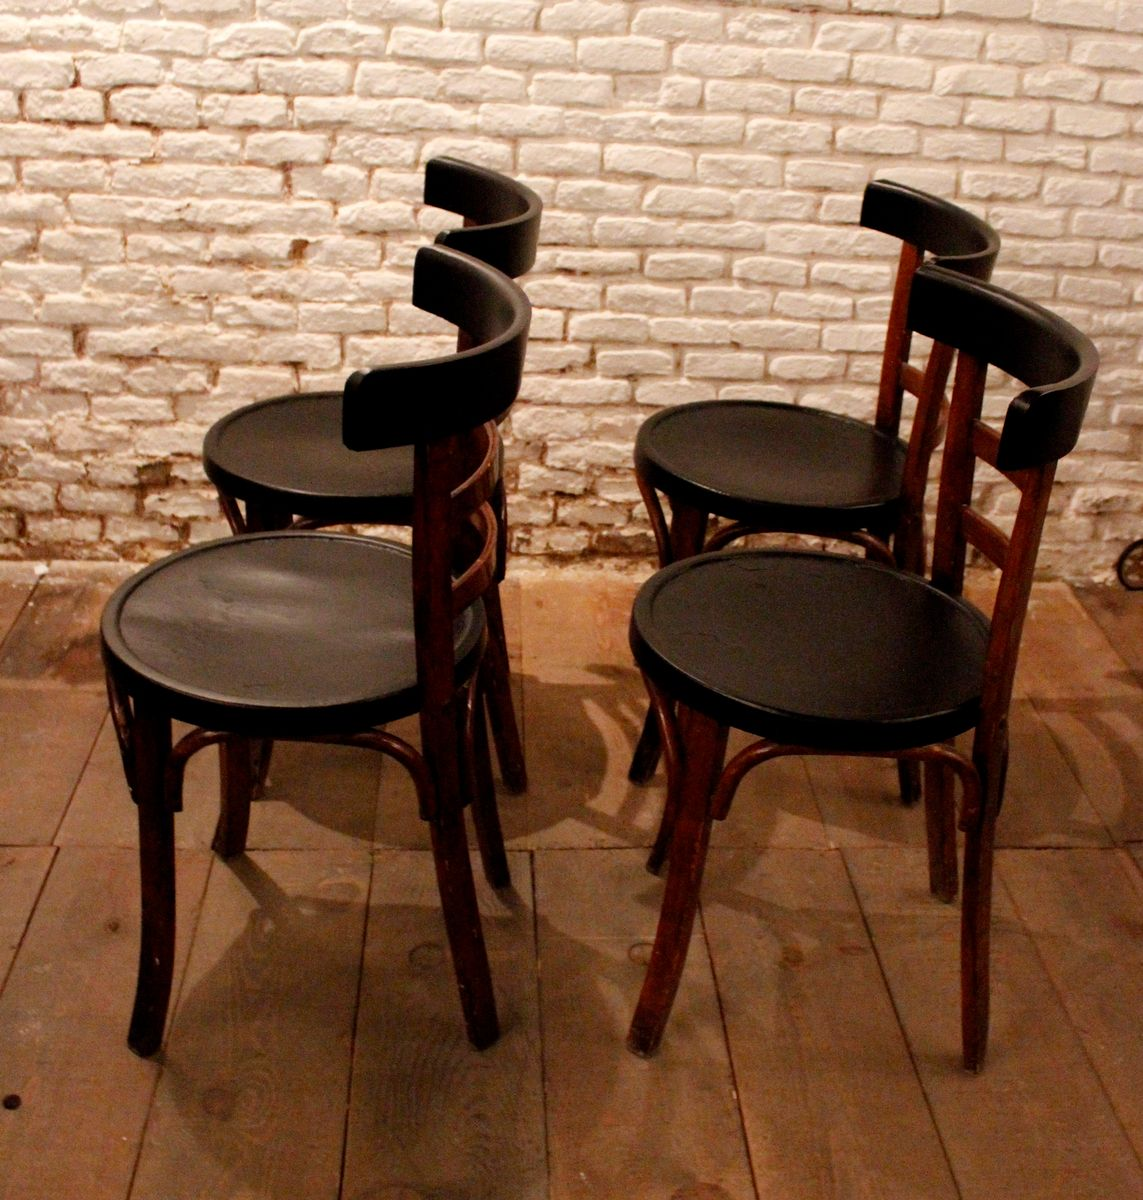 Vintage Pinewood Dining Chairs Set Of 4 For Sale At Pamono